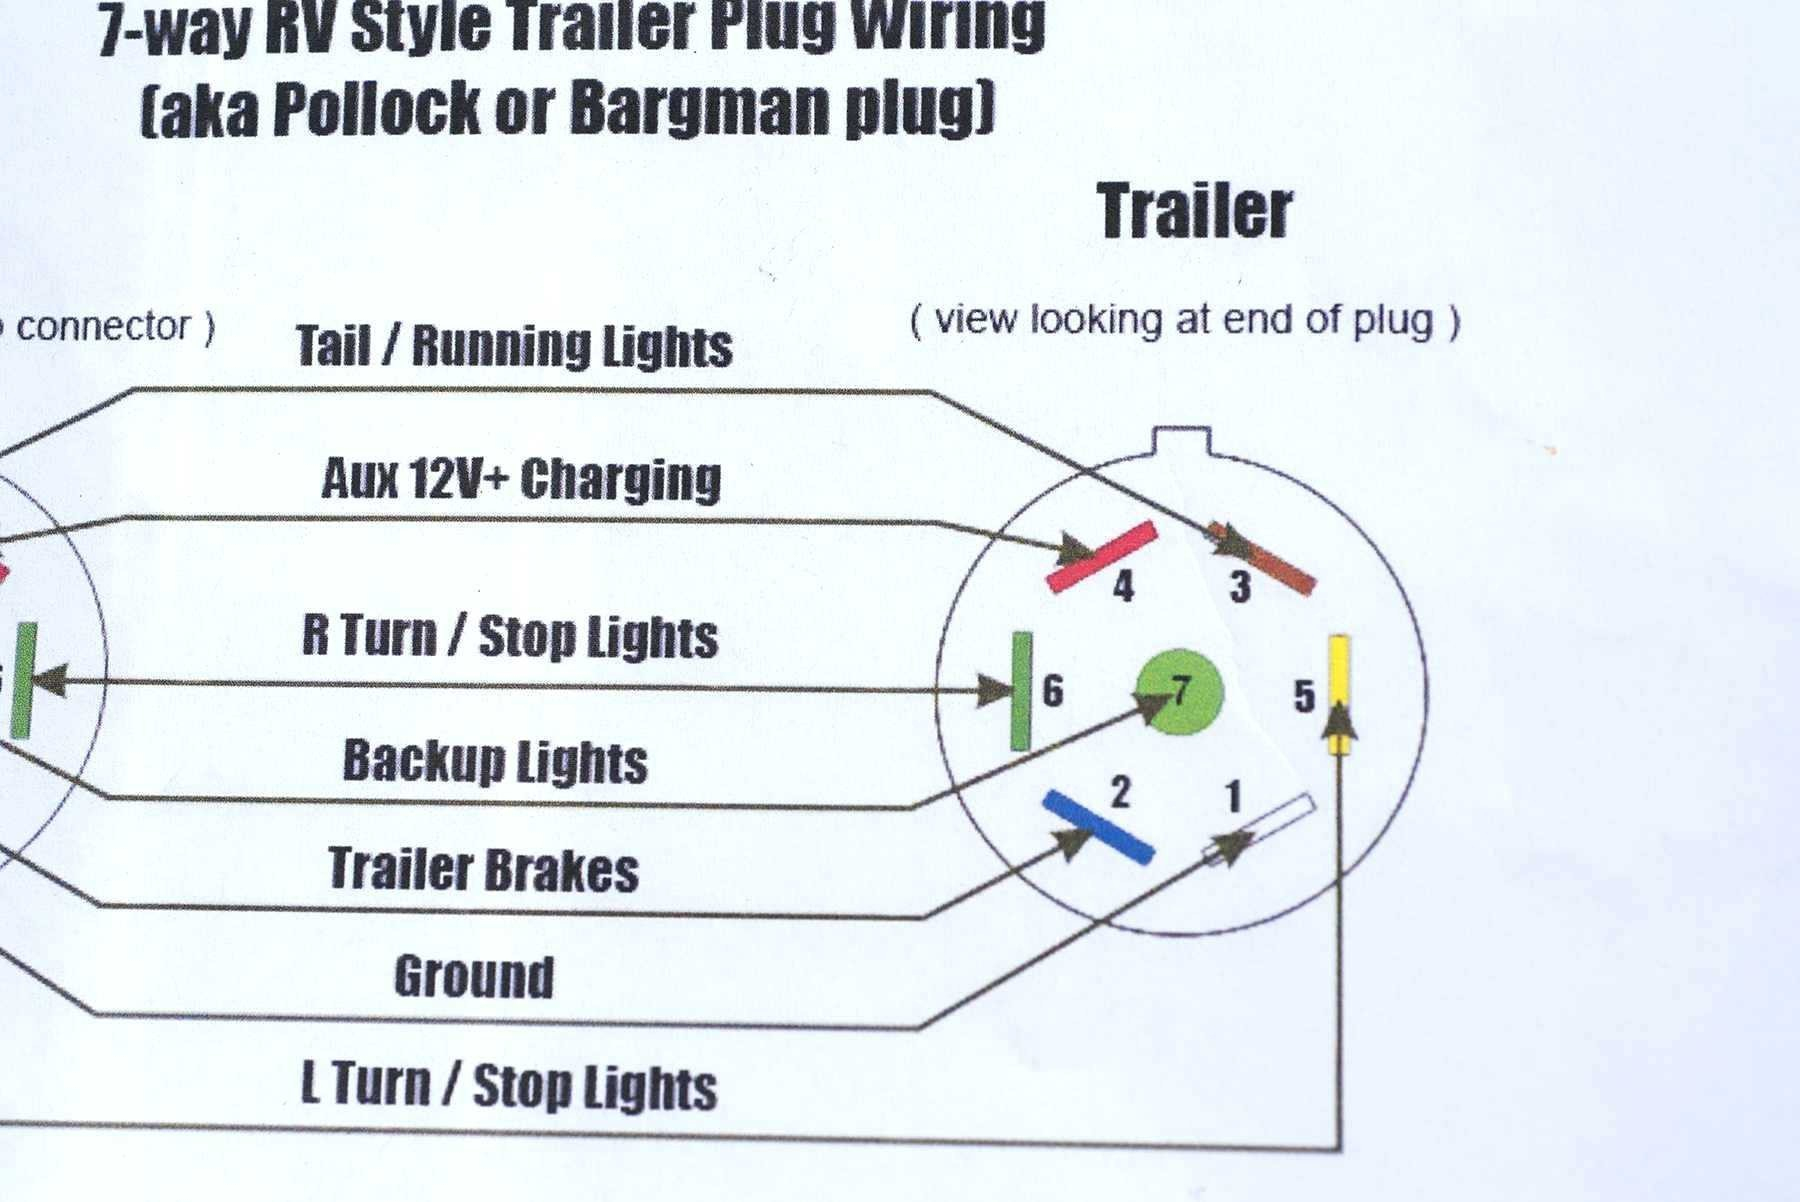 2004 Silverado Wiring Diagram Pdf | Wiring Diagram - 2002 Silverado Trailer Wiring Diagram